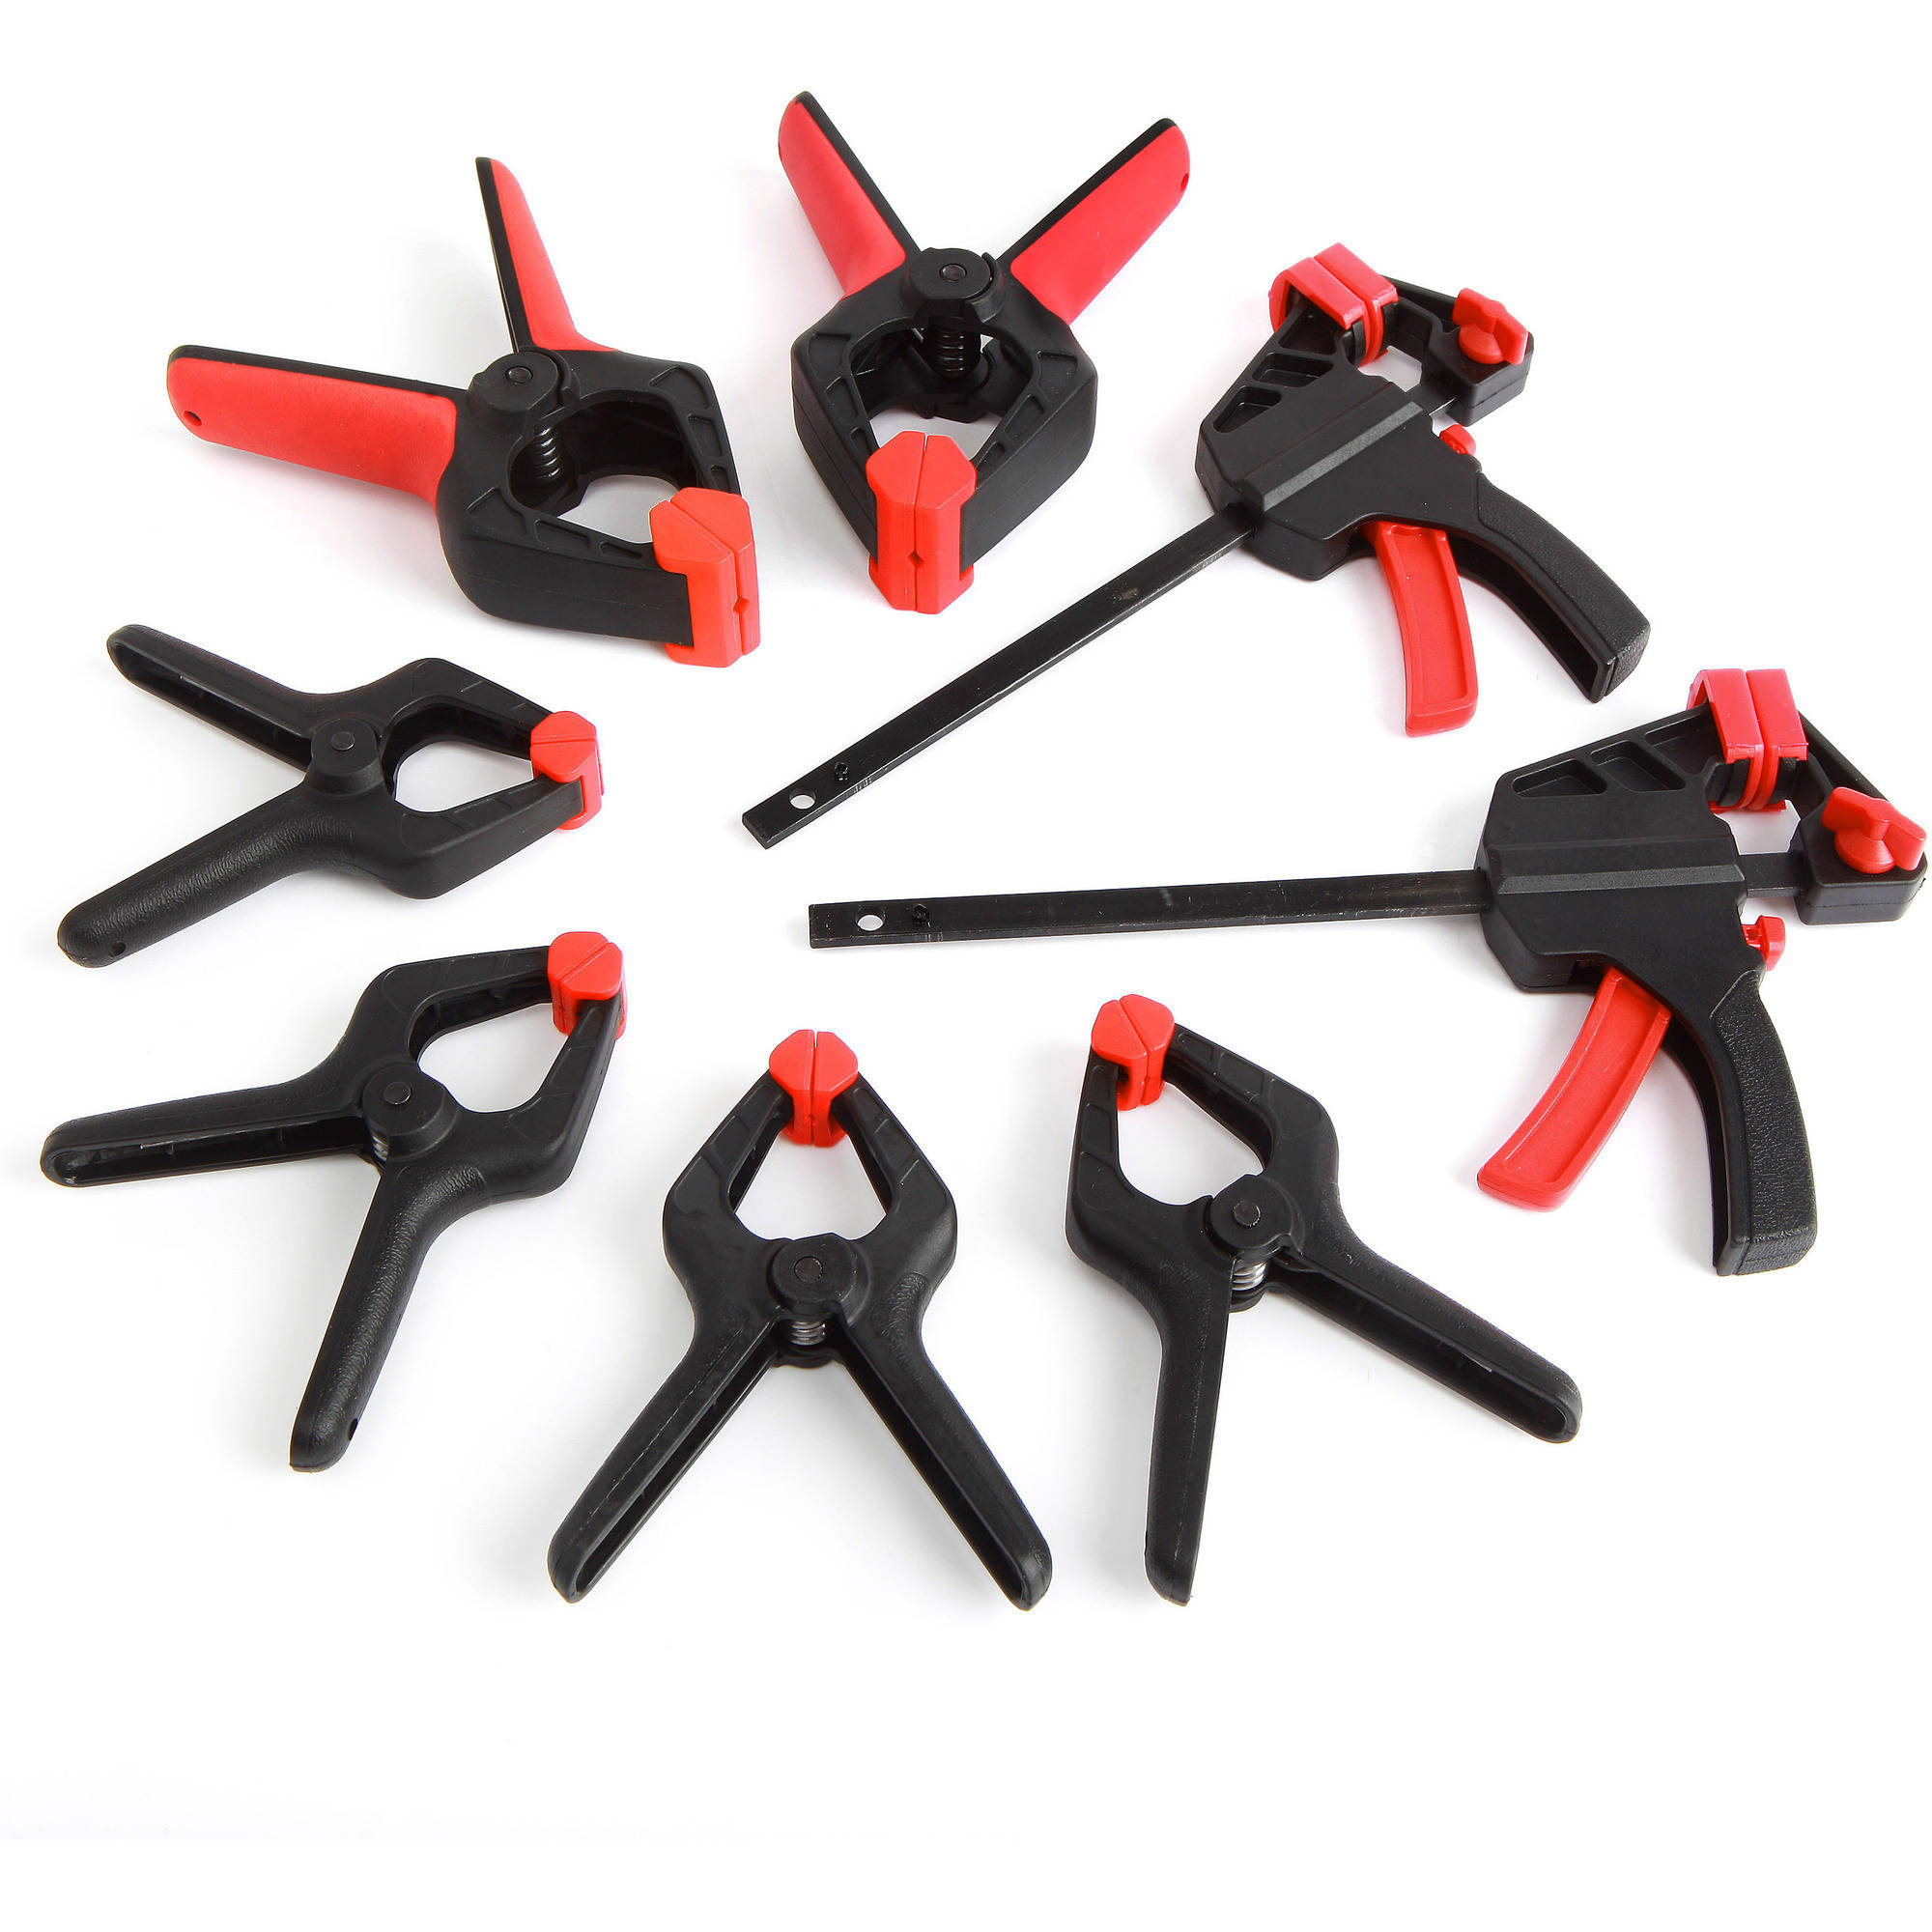 6 Pieces Mini Spring Clamps